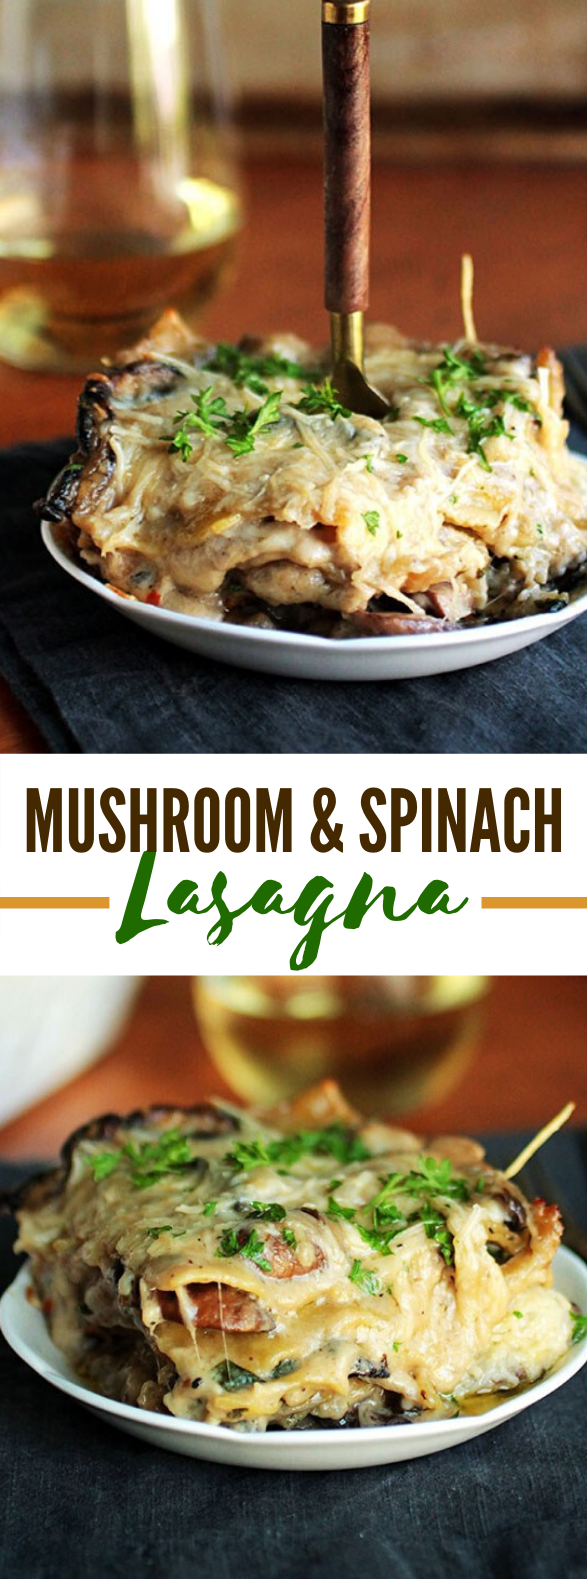 MUSHROOM SPINACH LASAGNA #vegetarian #freezermeals